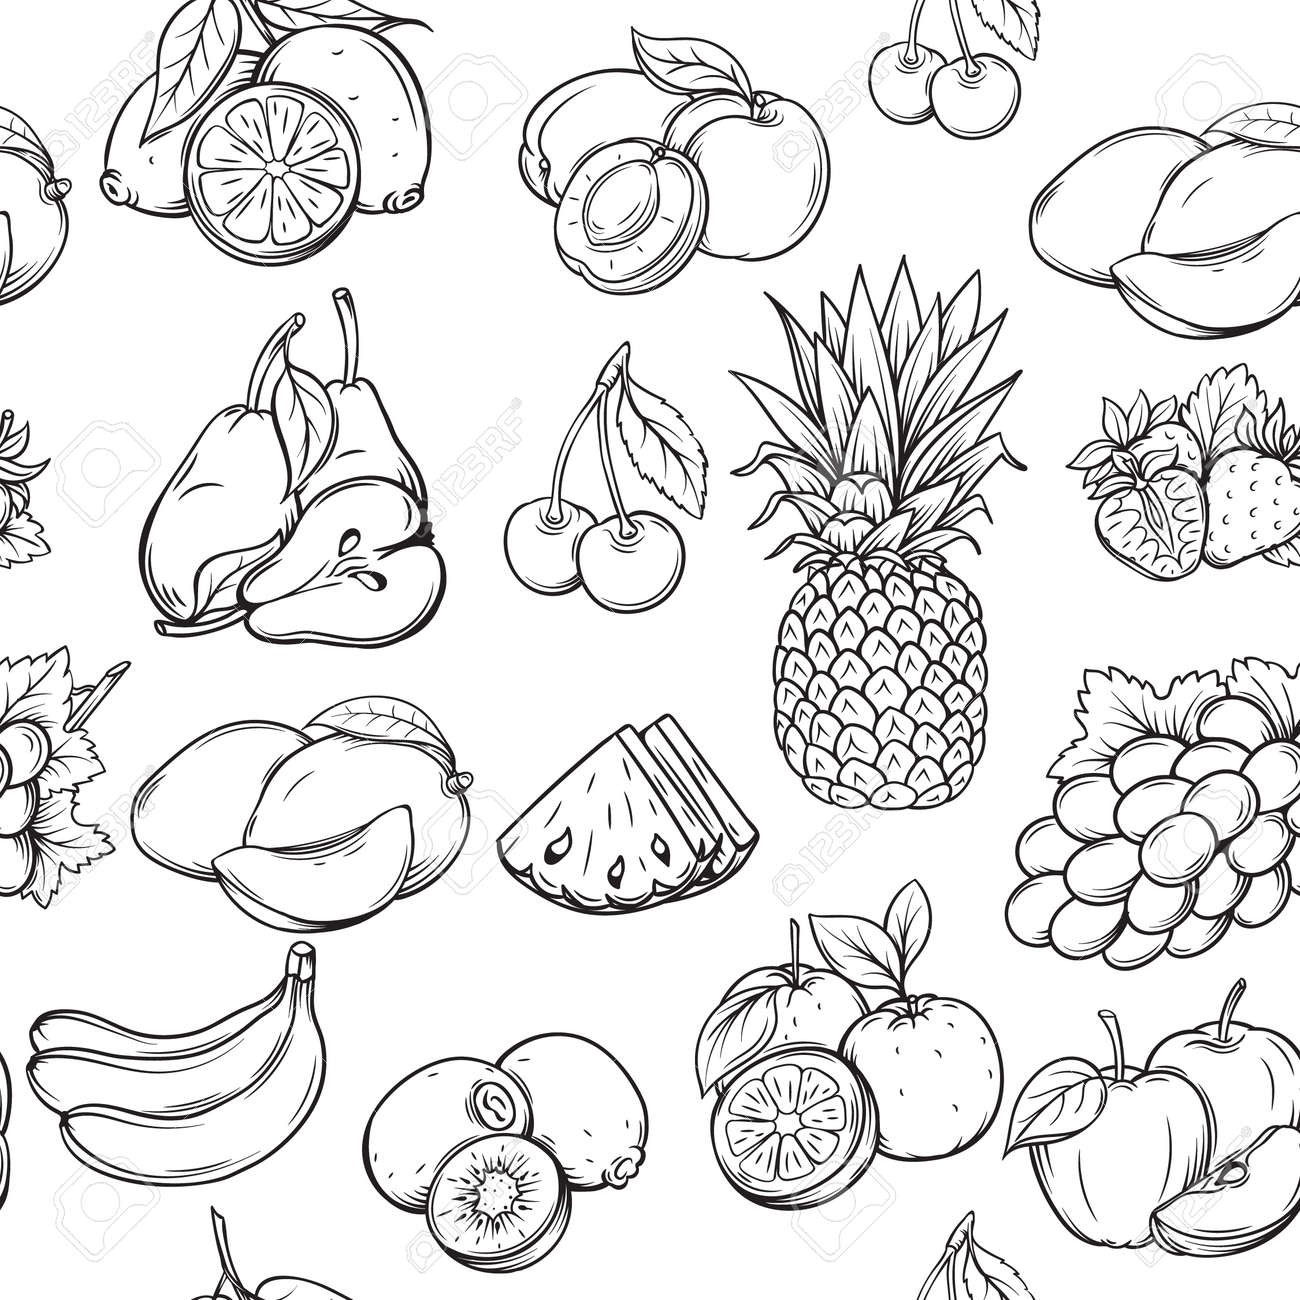 Hand Draw Fruits Seamless Pattern Vintage Style Royalty Free